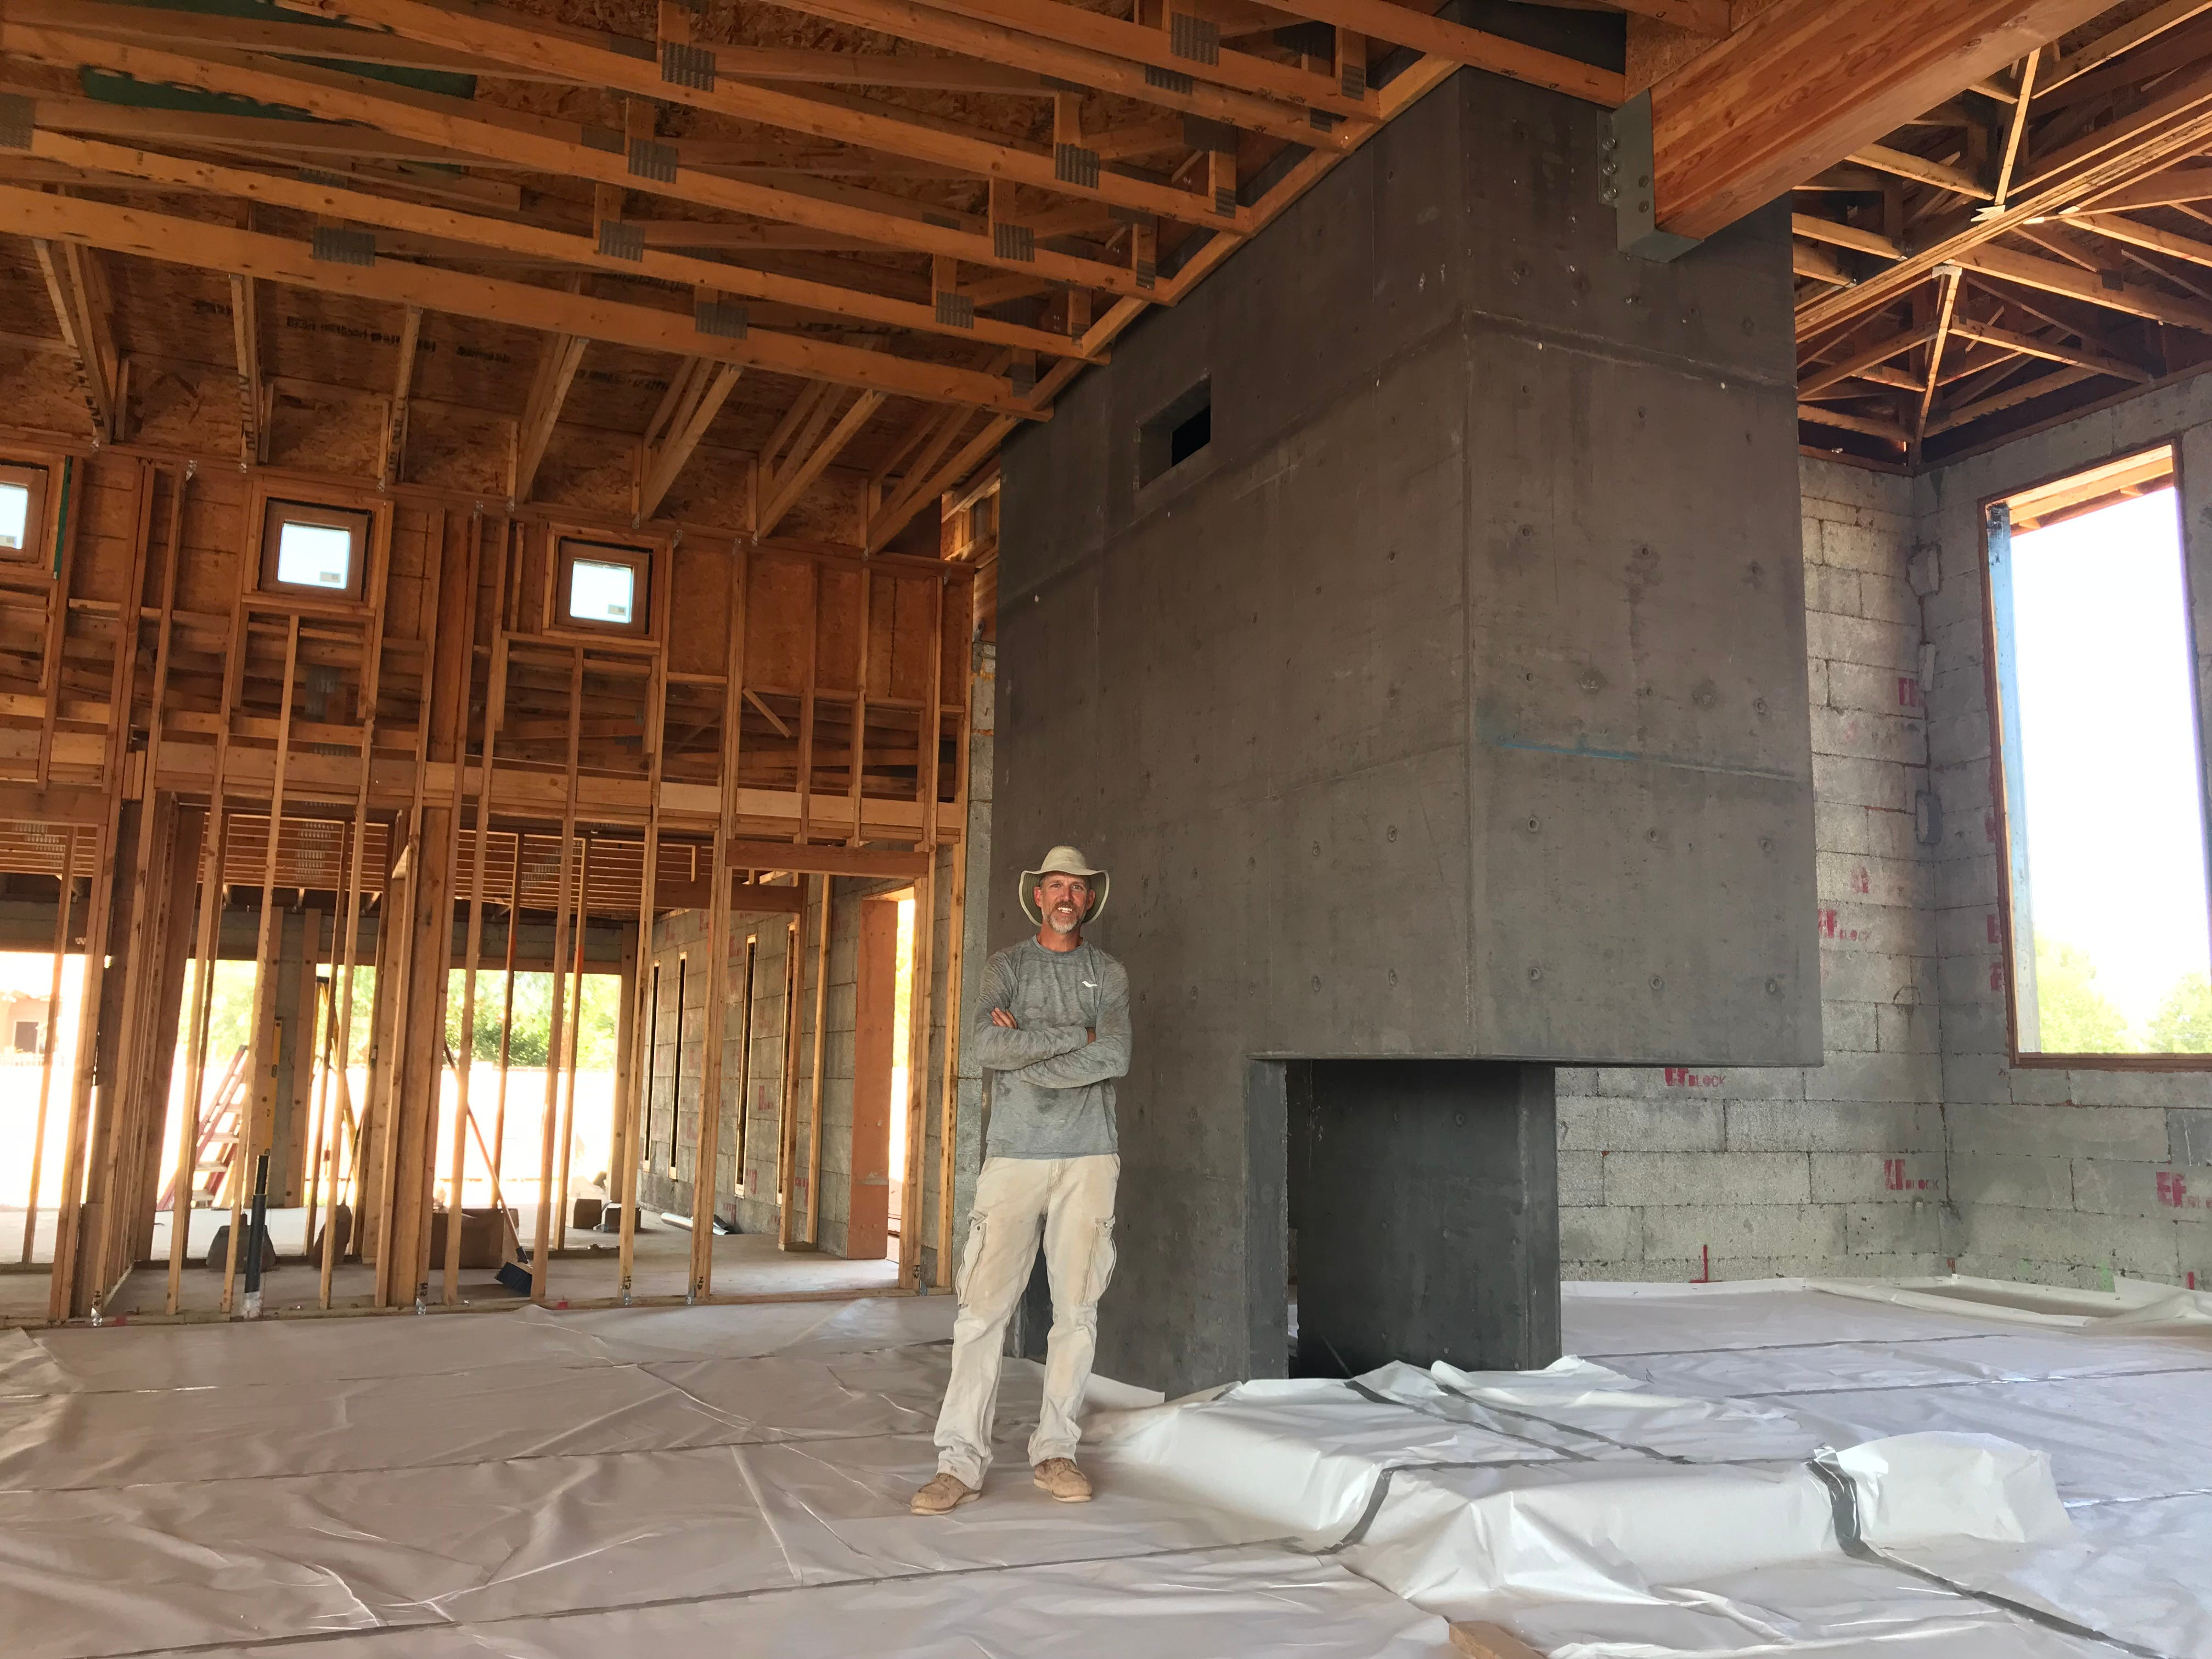 Will Carpenter, commercial project manager behind Tempe's First Solar building, has wanted to build his own house since he was 8 years old.